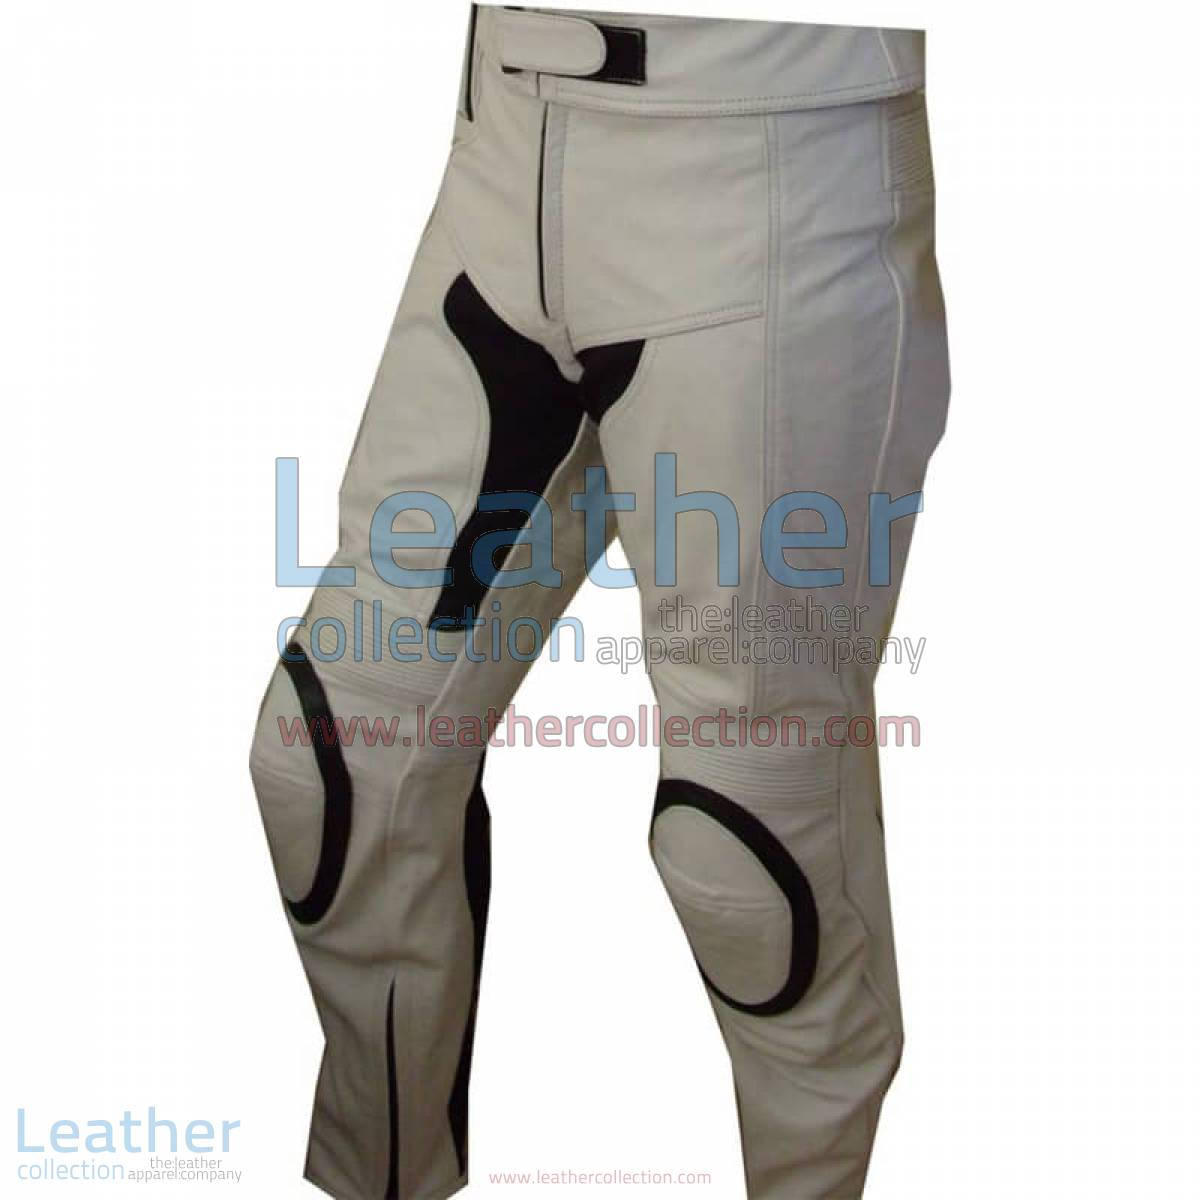 White Motorcycle Pants | motorcycle pants,white motorcycle pants